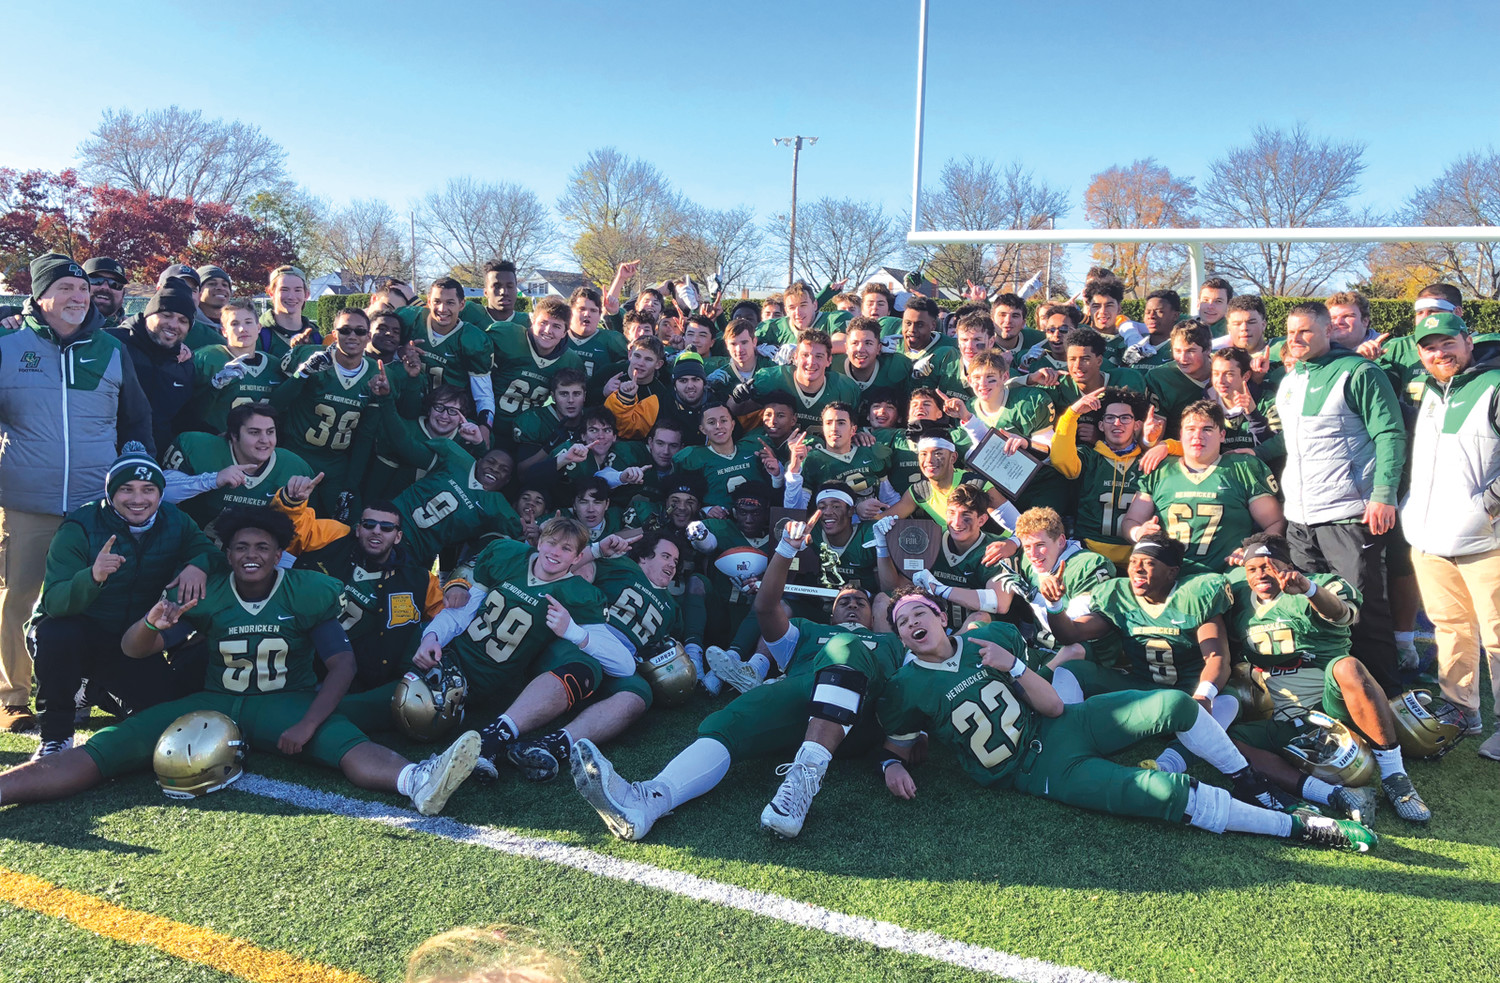 REDEMPTION: The 2018 Division I state champion Bishop Hendricken football team.